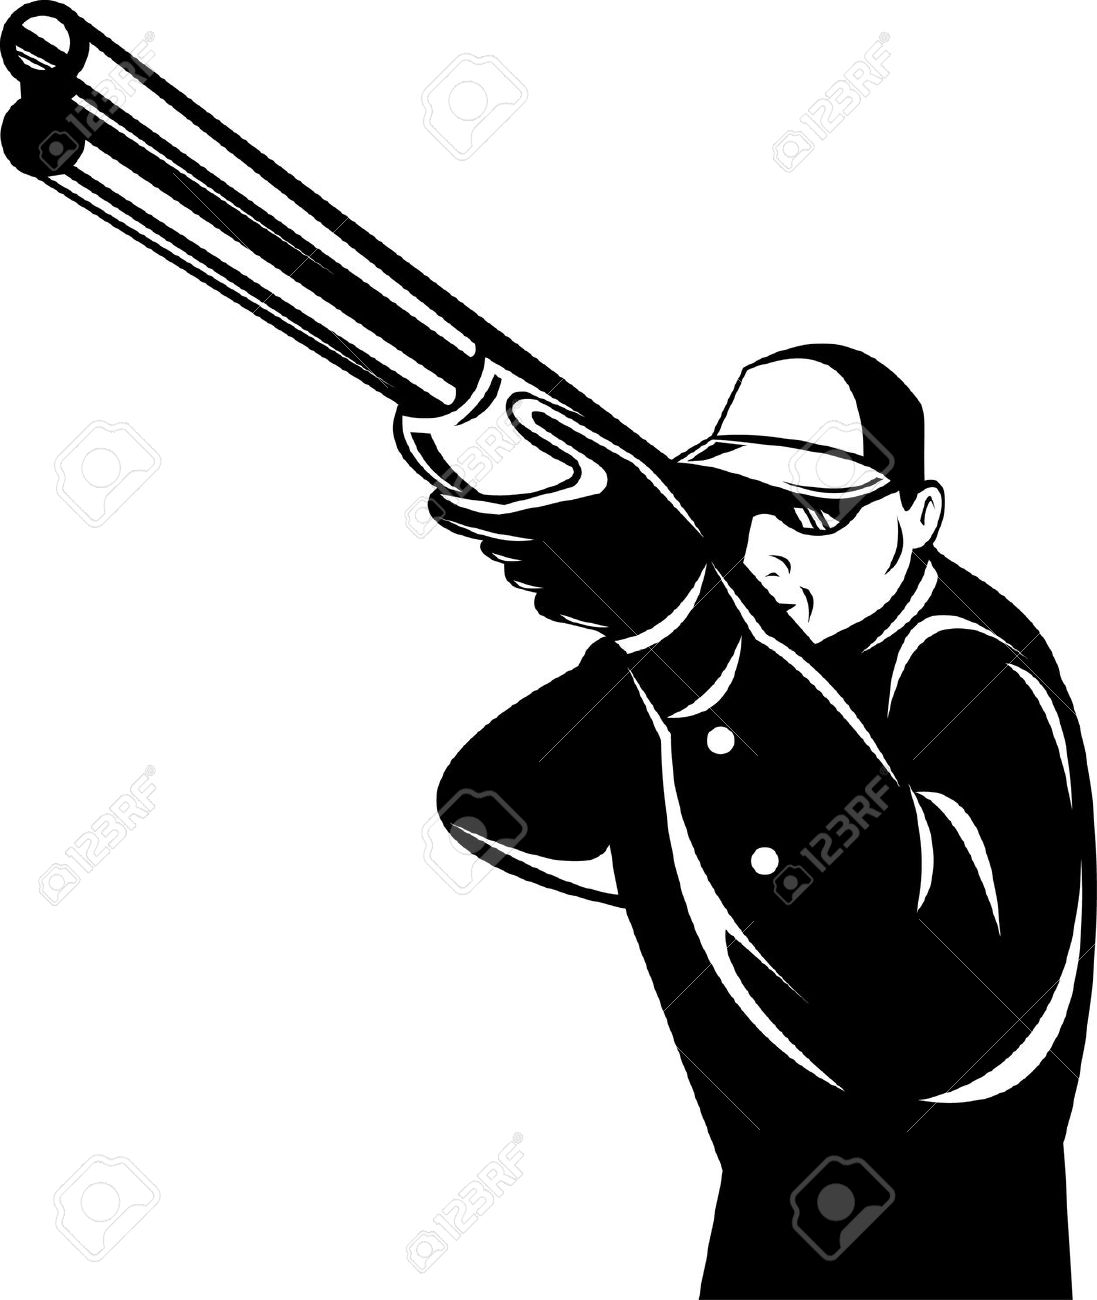 Trap shooter clipart.